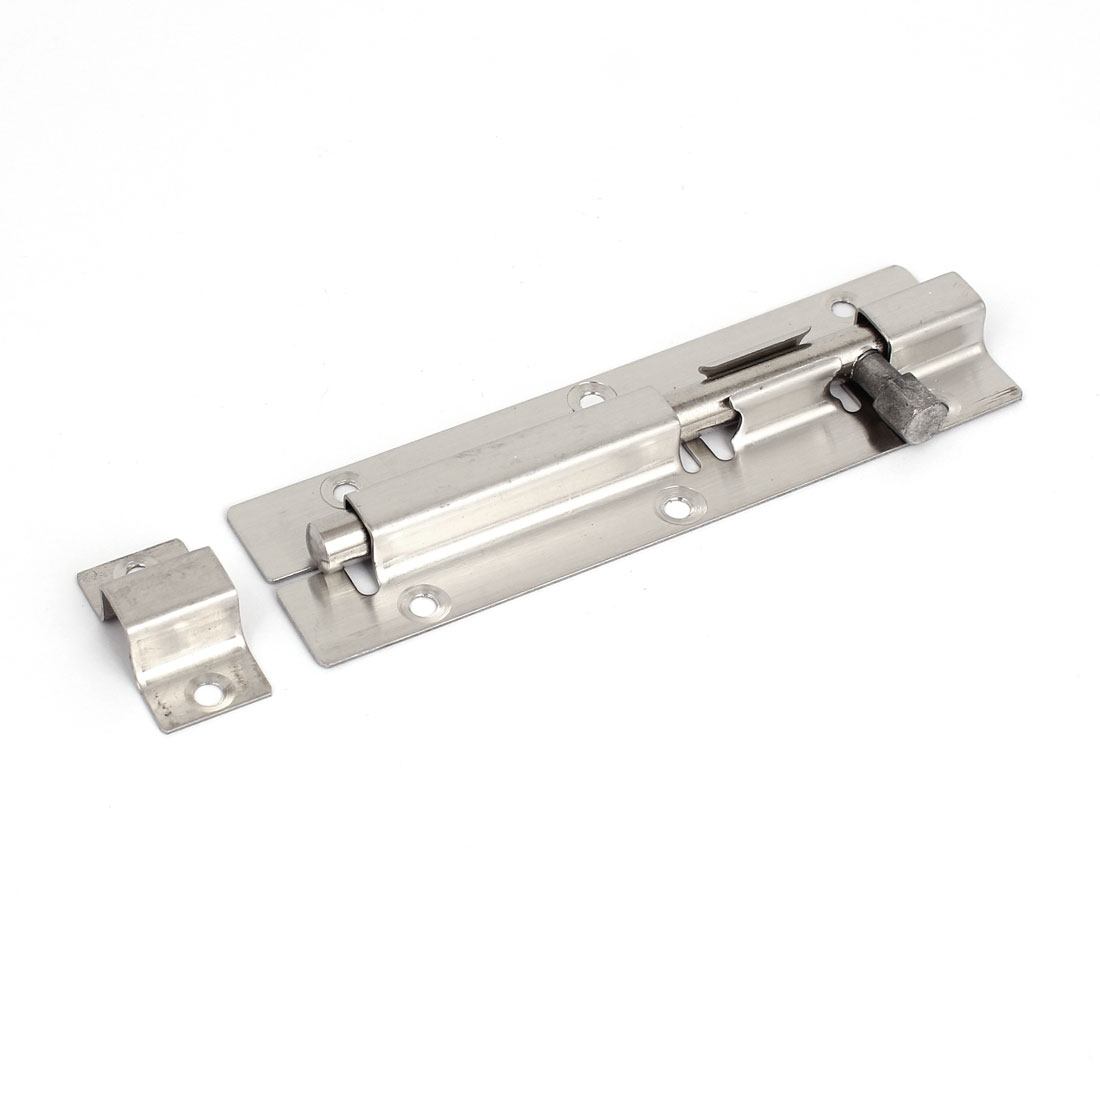 "Stainless Steel Gate Lock Safety Door Barrel Bolt Latch Hasp Stapler 5"" Length"